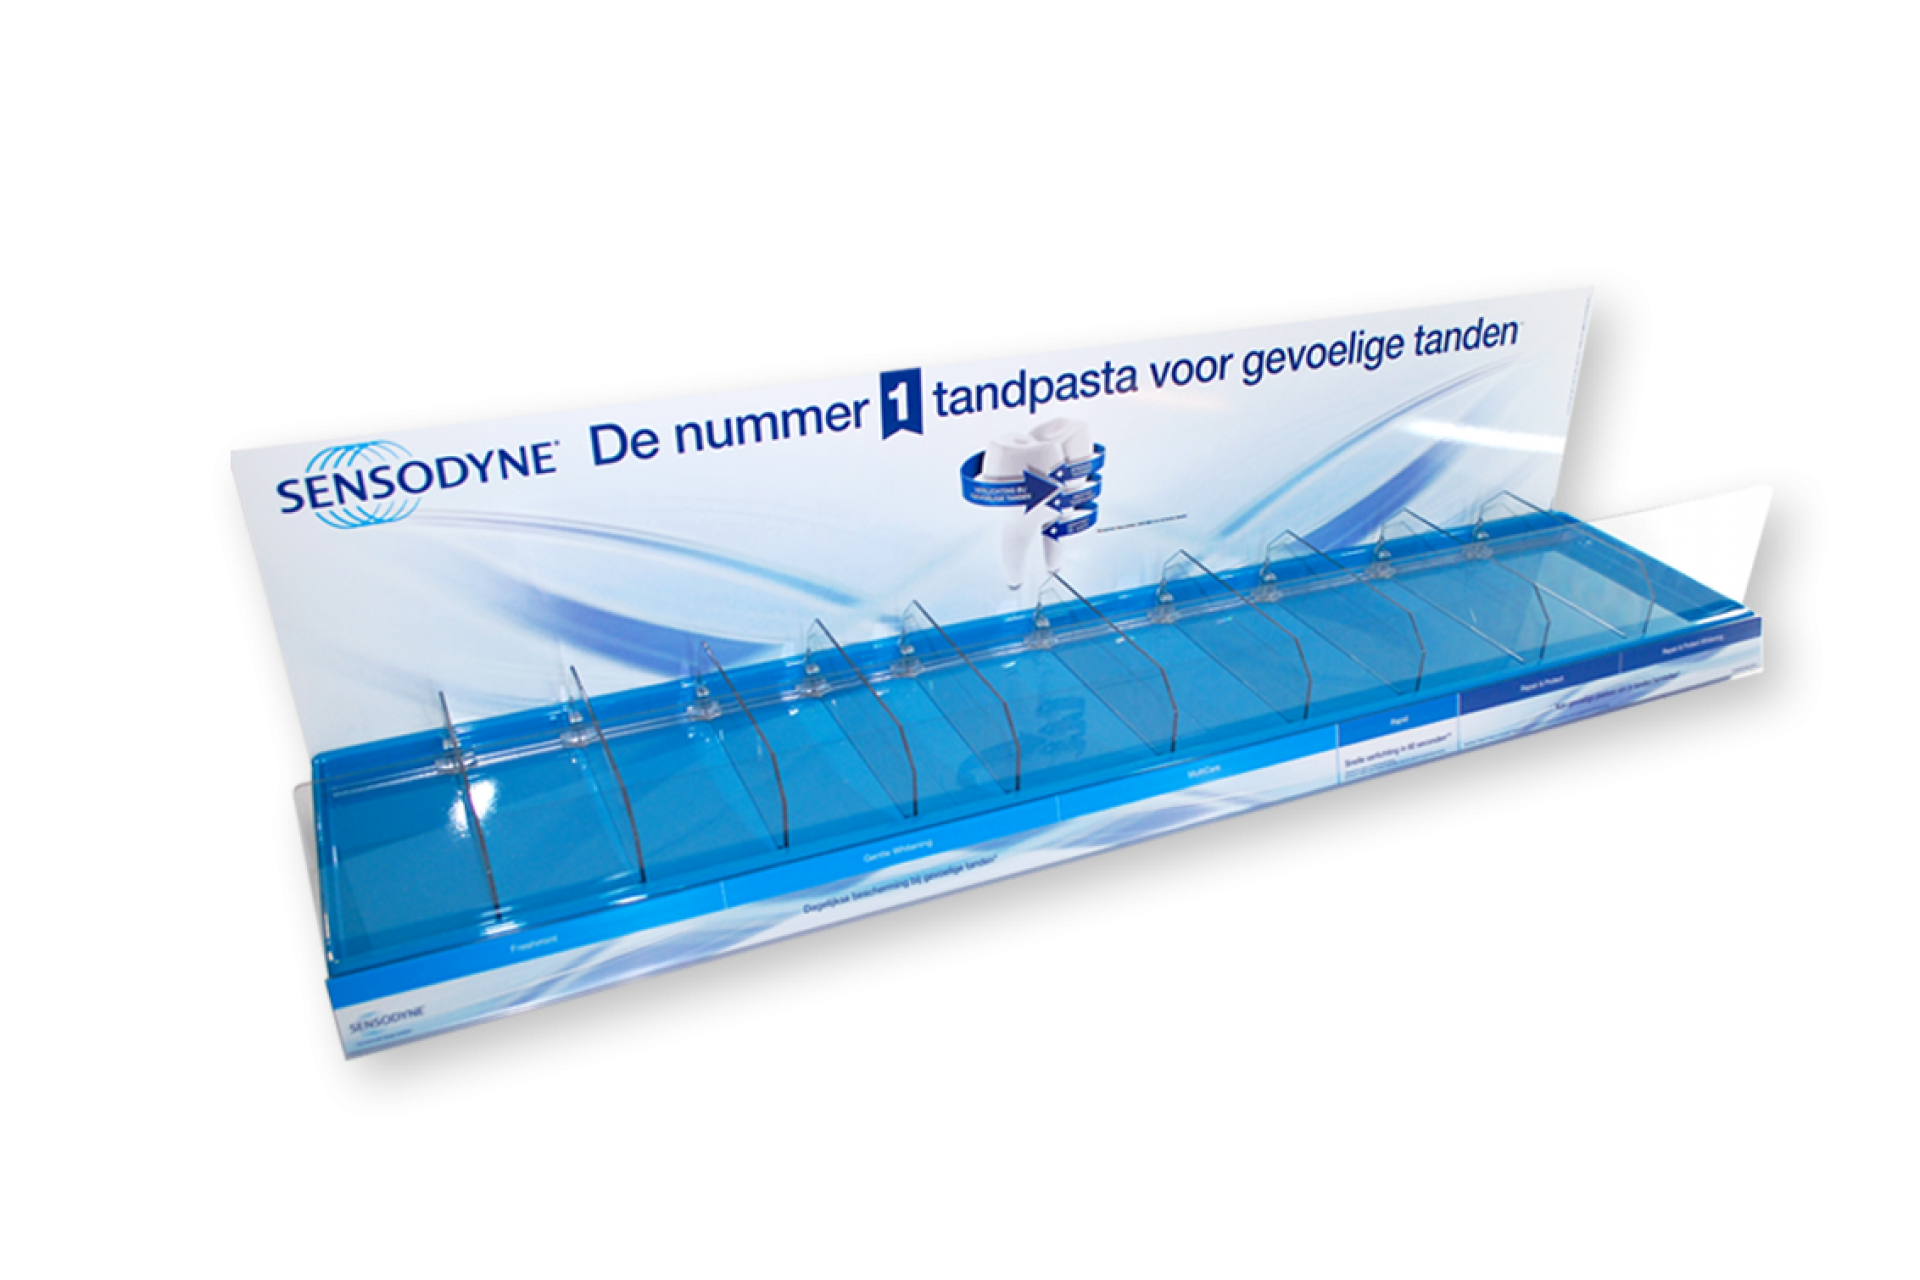 SENSODYNE - Shelf display